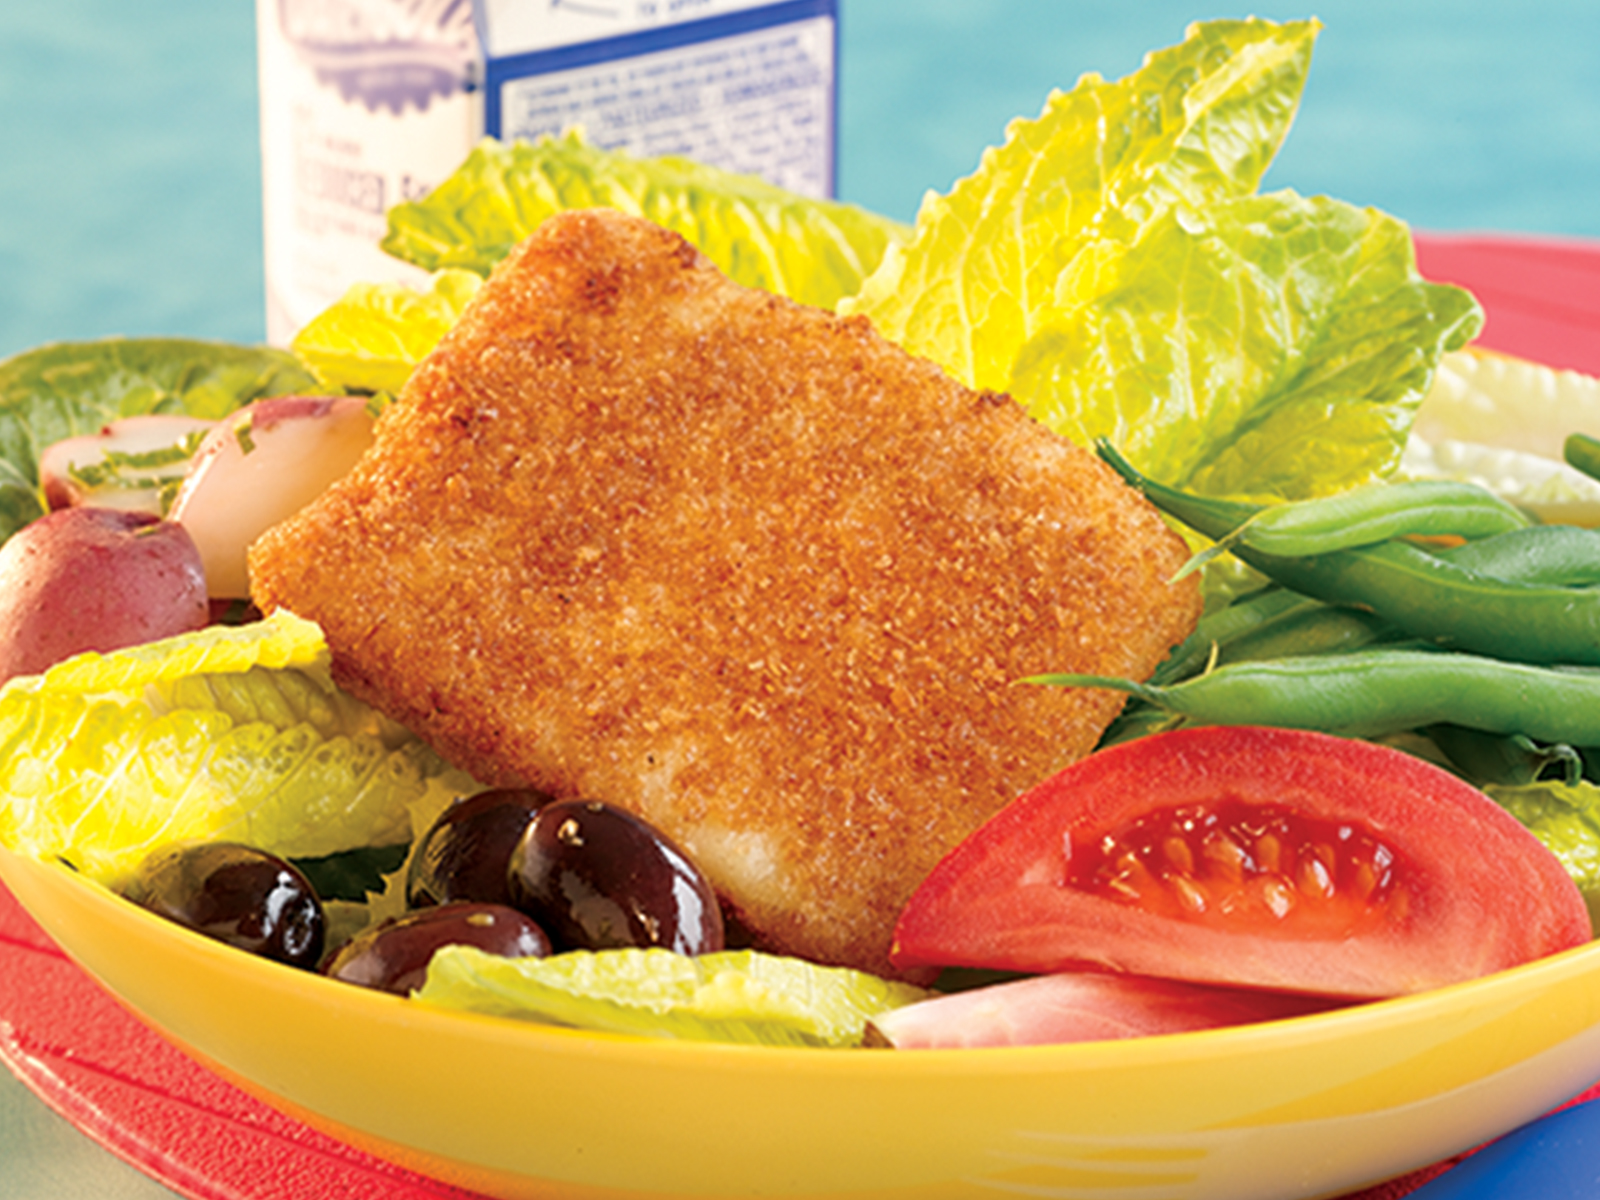 Breaded Wild Alaska Pollock Portions 3.6 oz WG, Oven Ready 418302